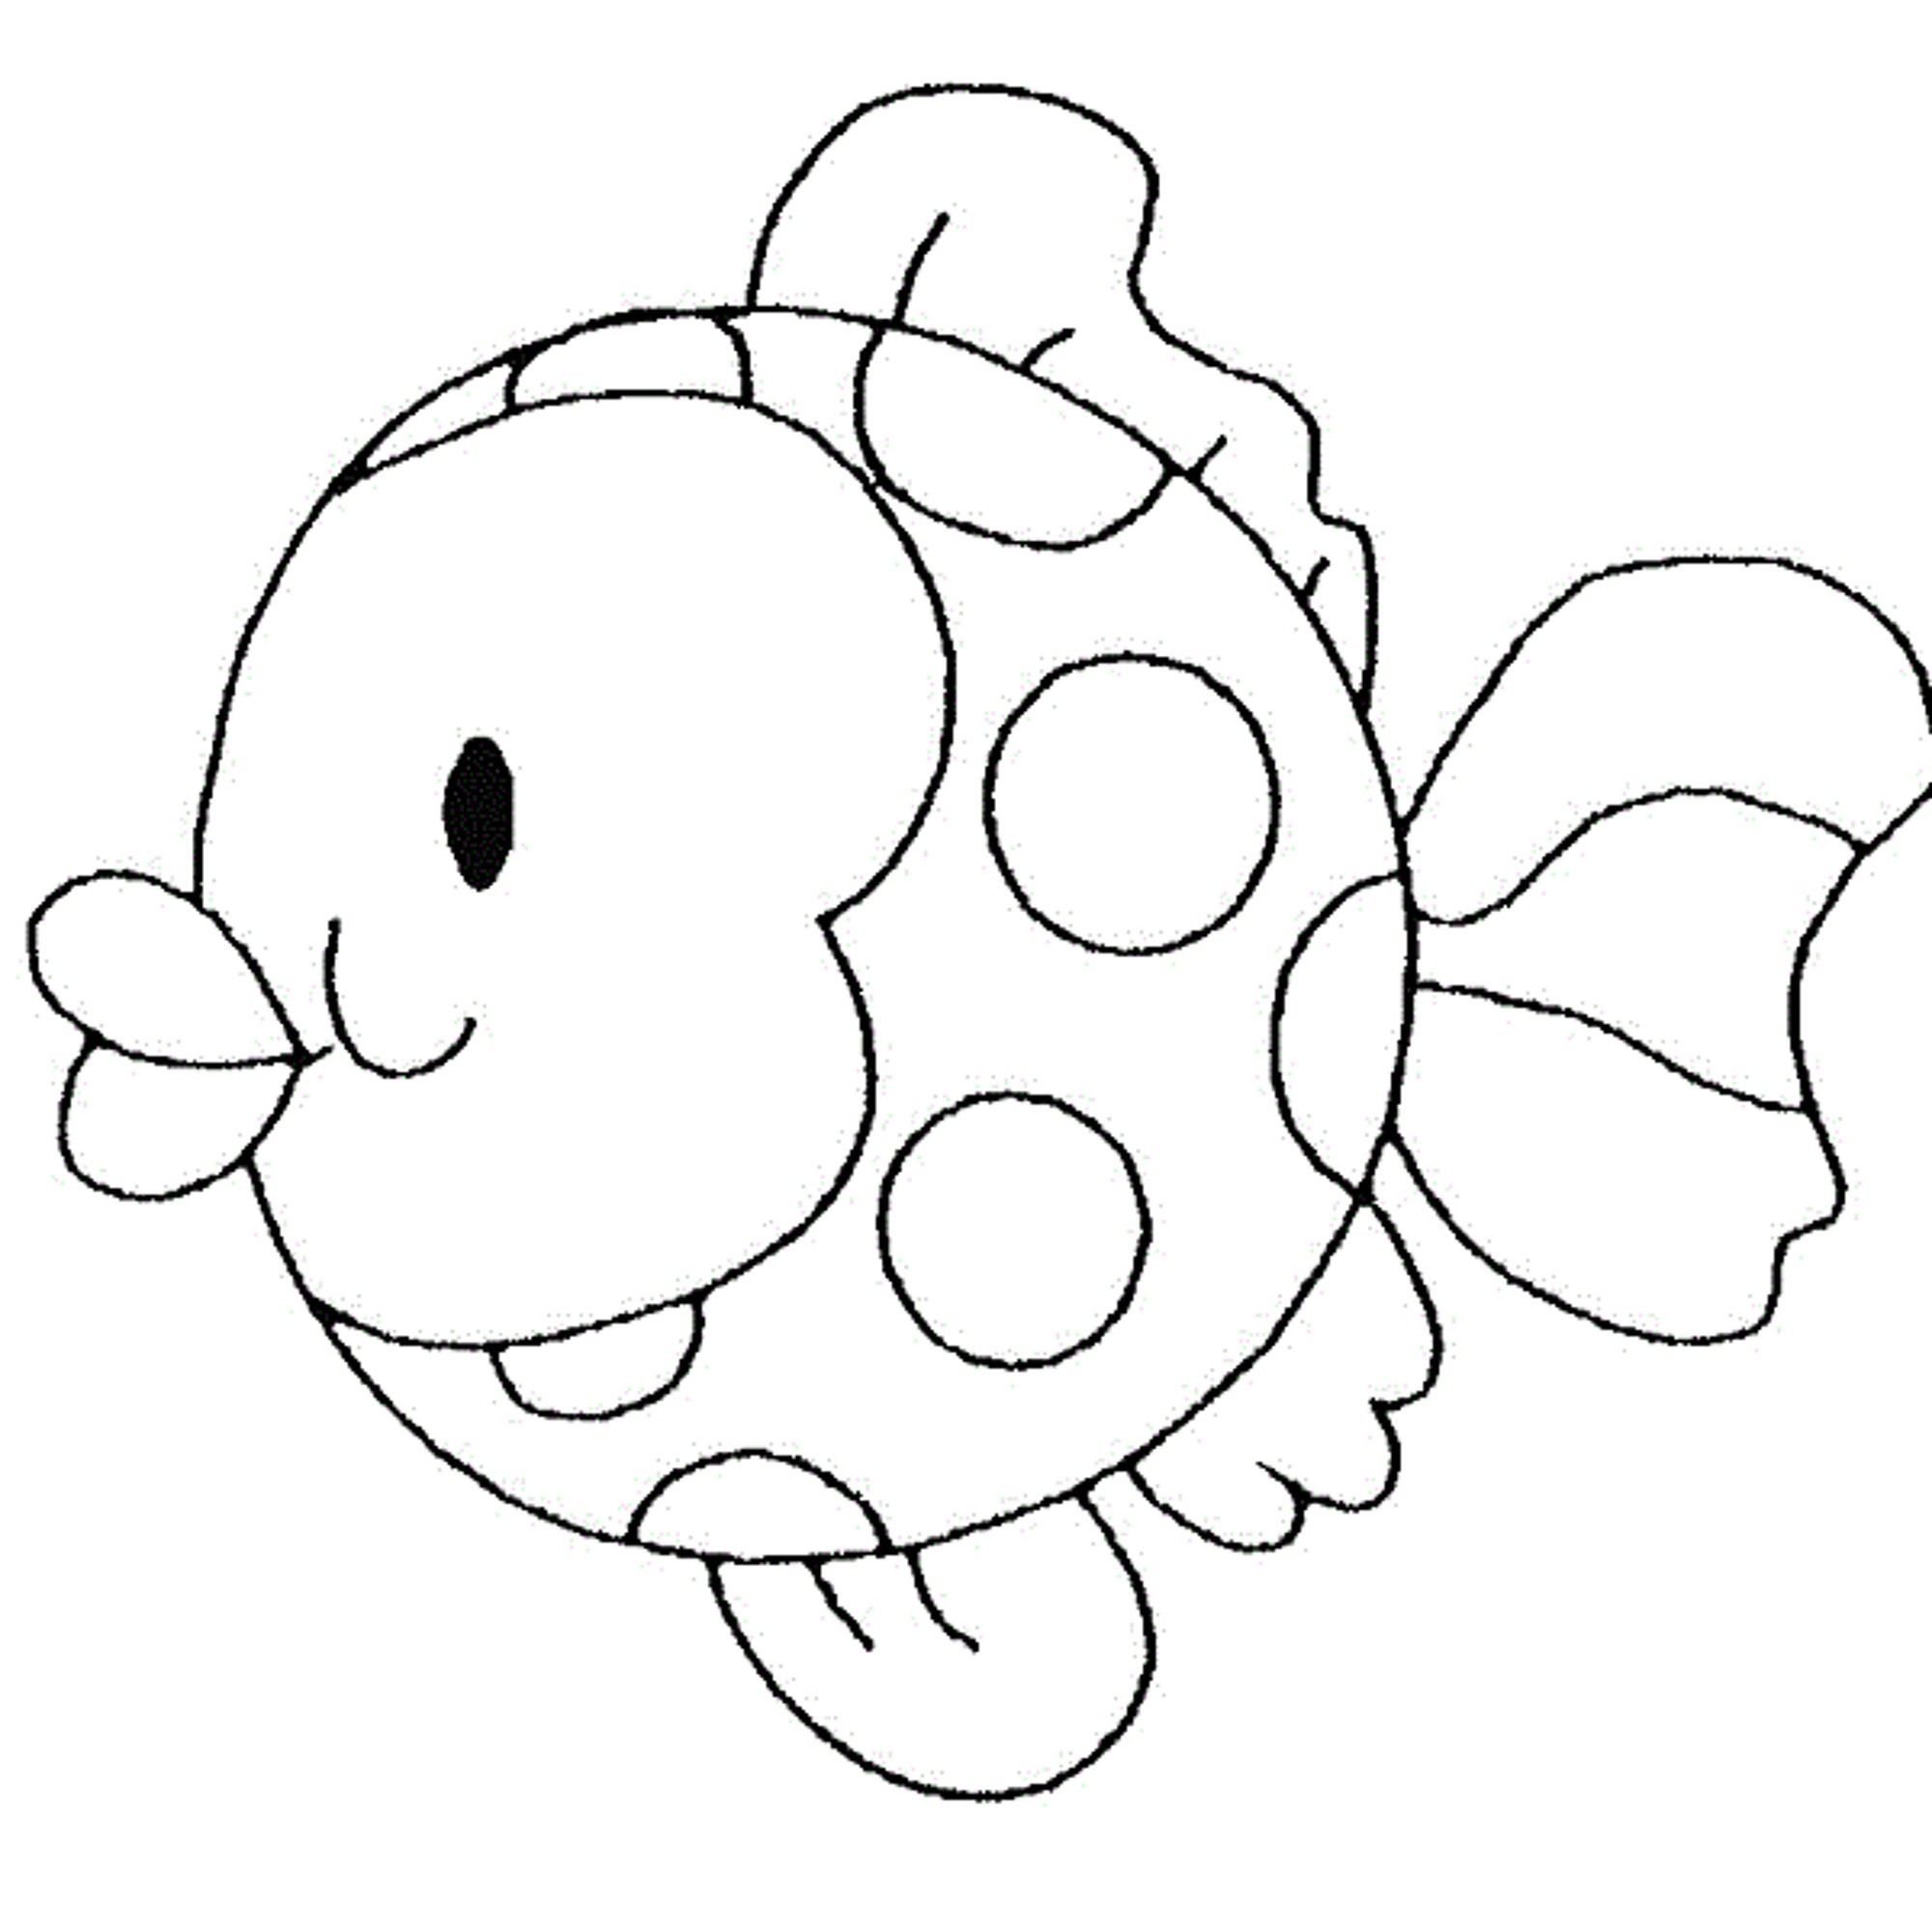 rainbow fish coloring page kids colouring pages grig3 org   Coloring ...